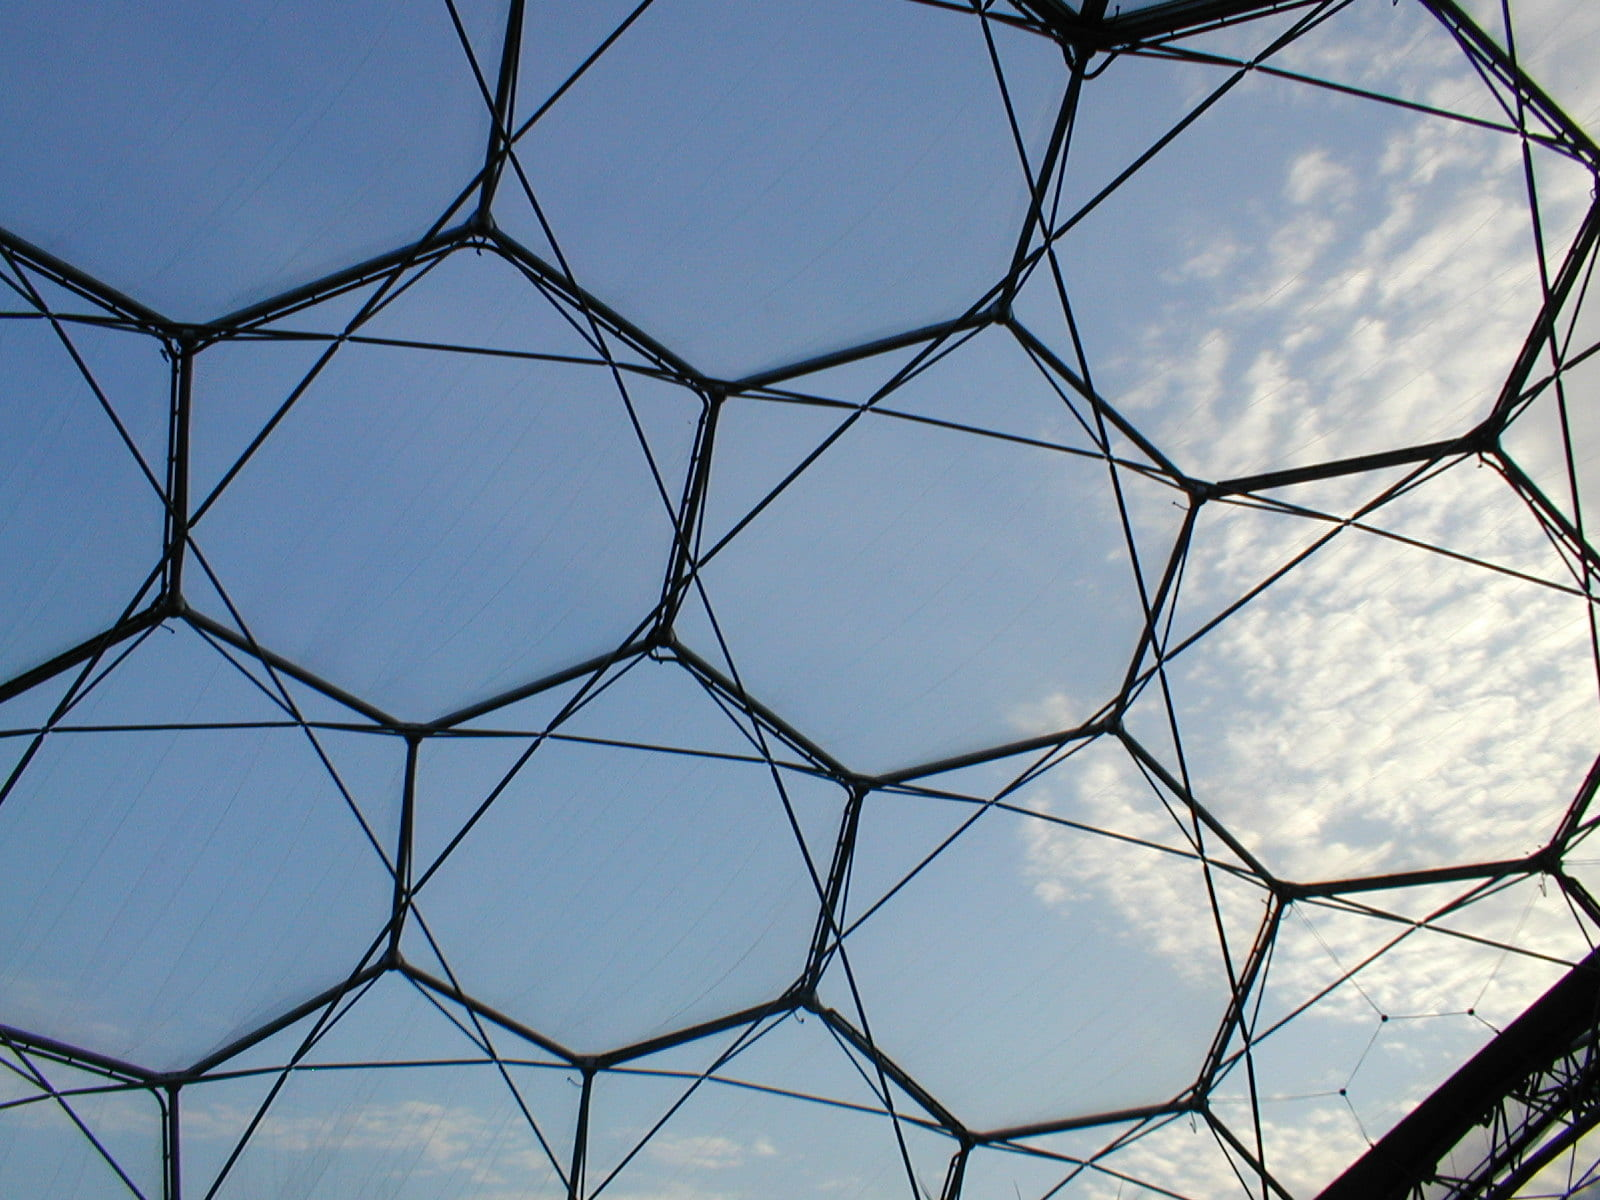 hexagonal metal framework